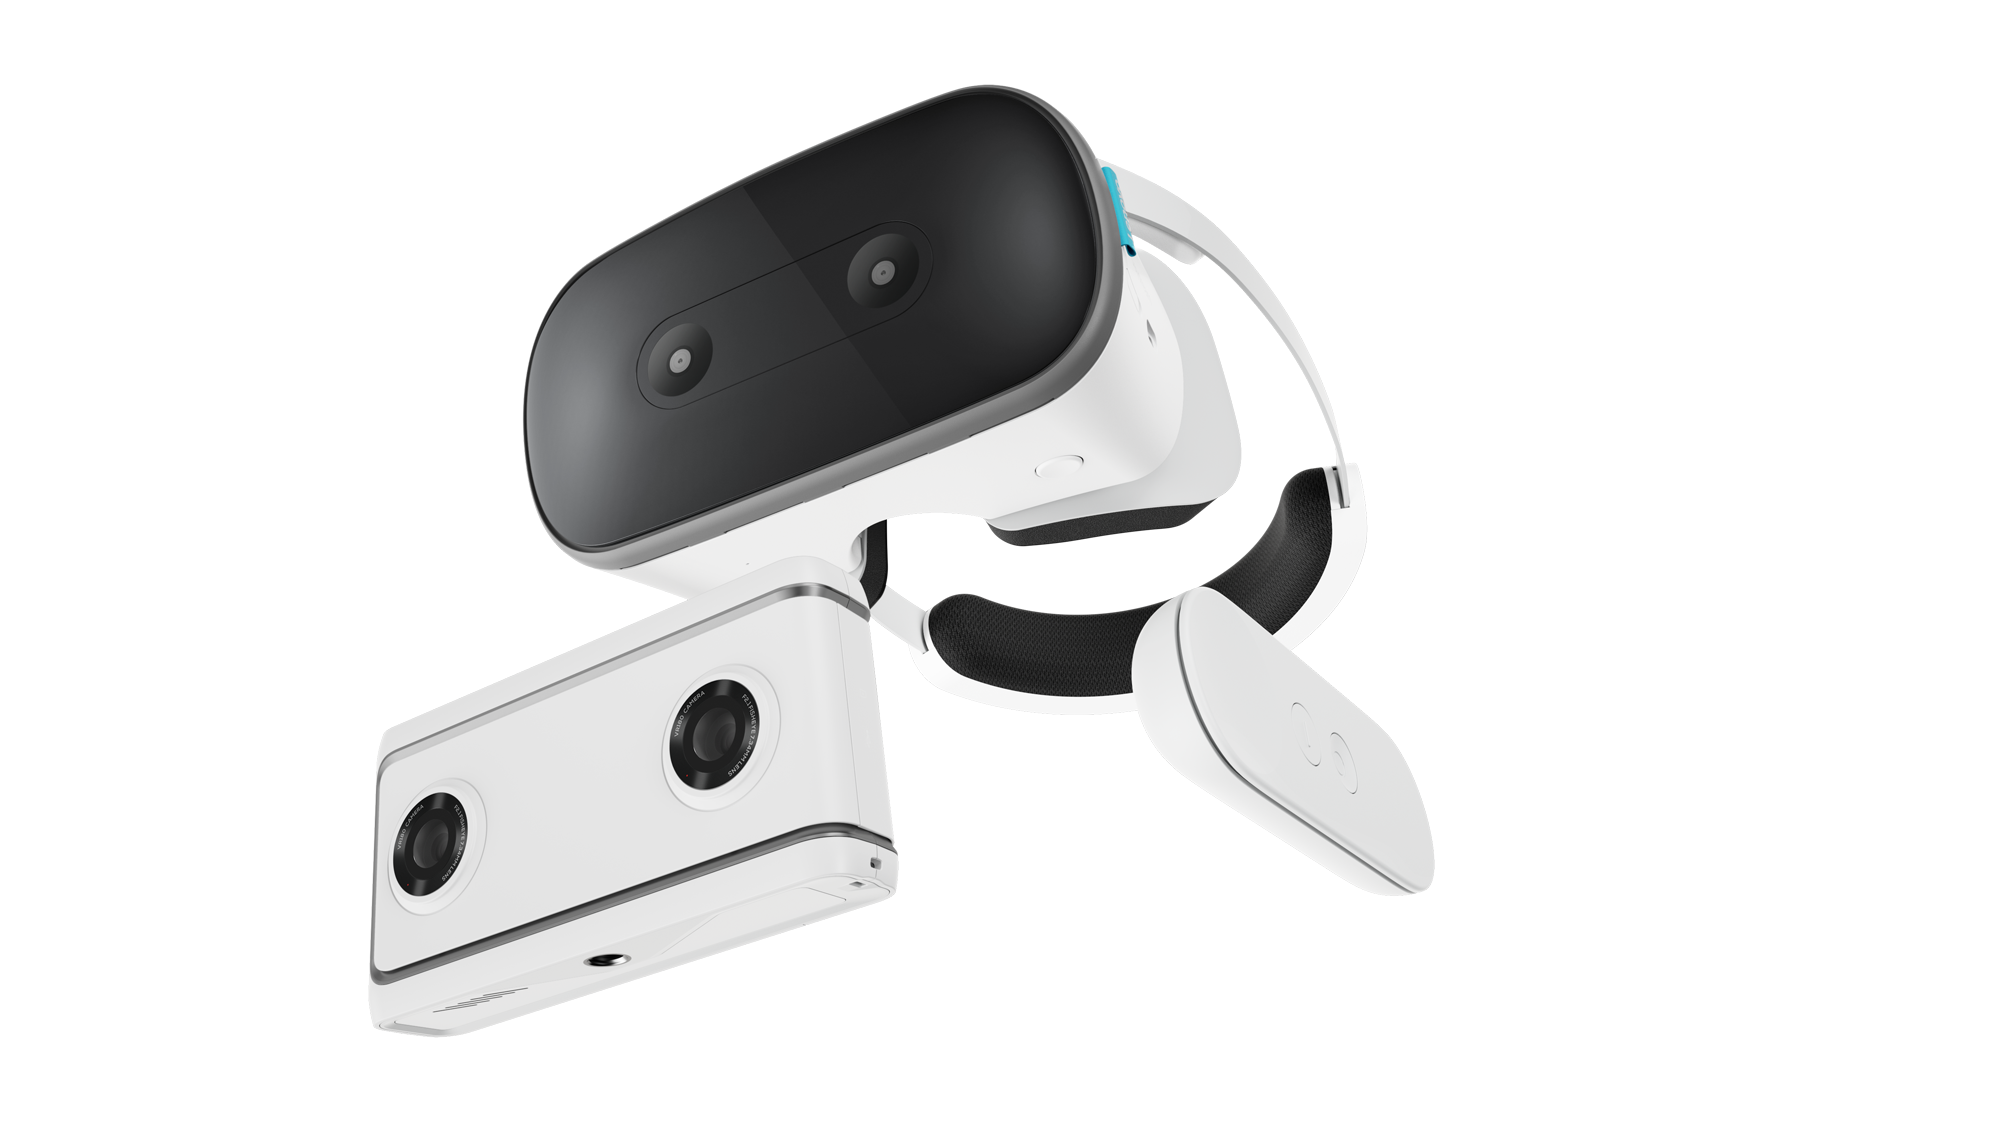 Google Daydream's First Standalone VR Headset is here